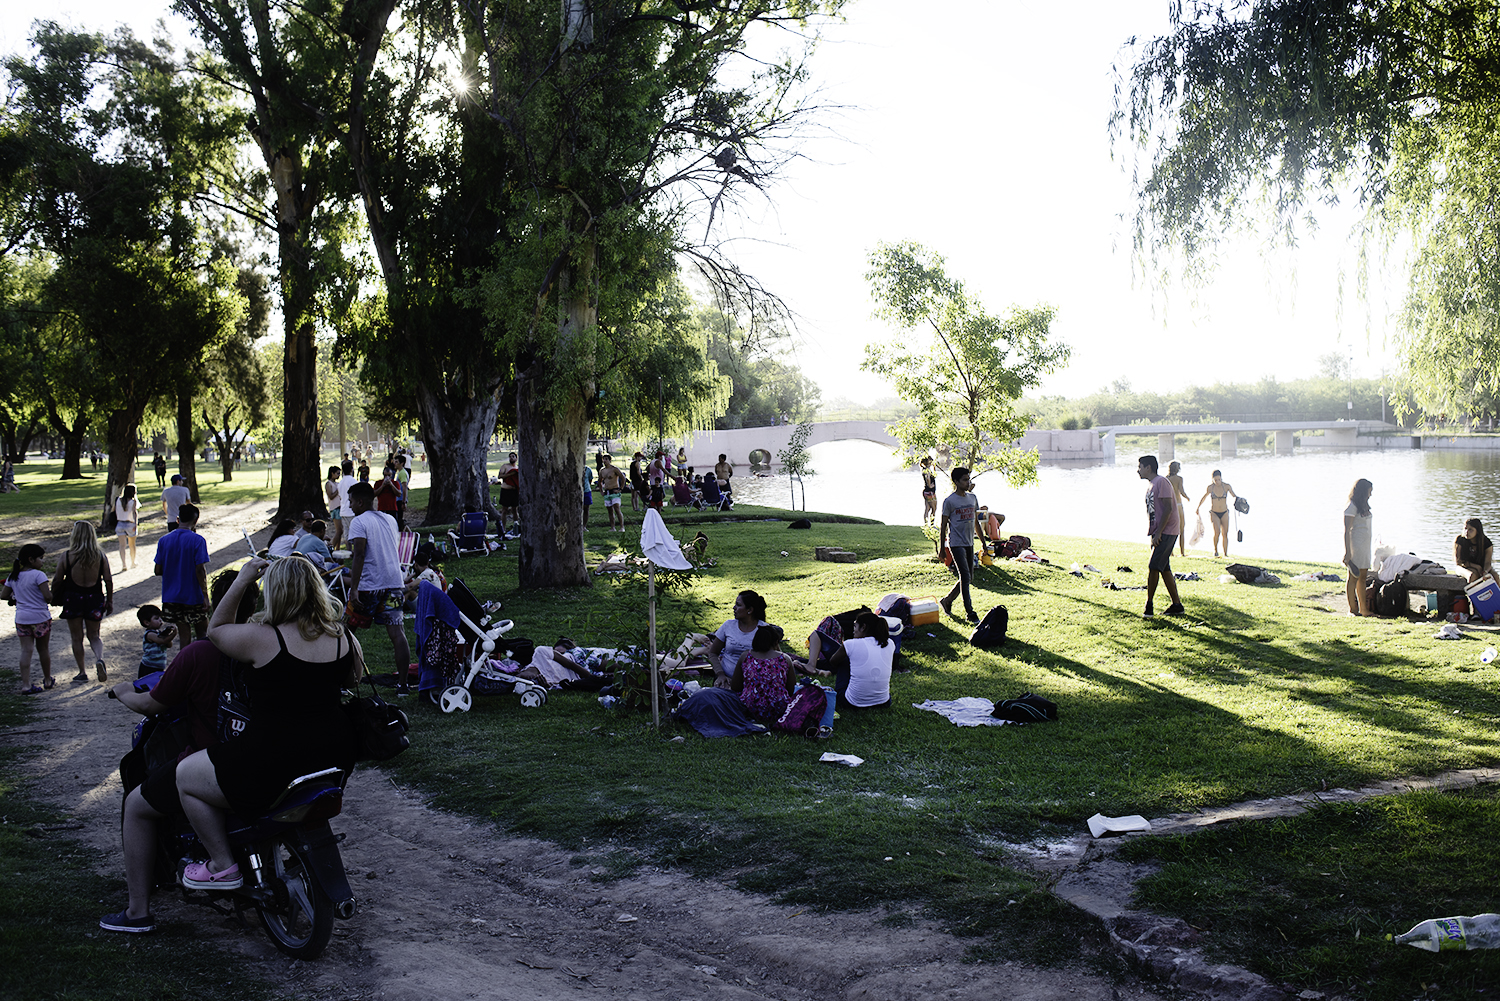 An Areco summer day at the park on the river